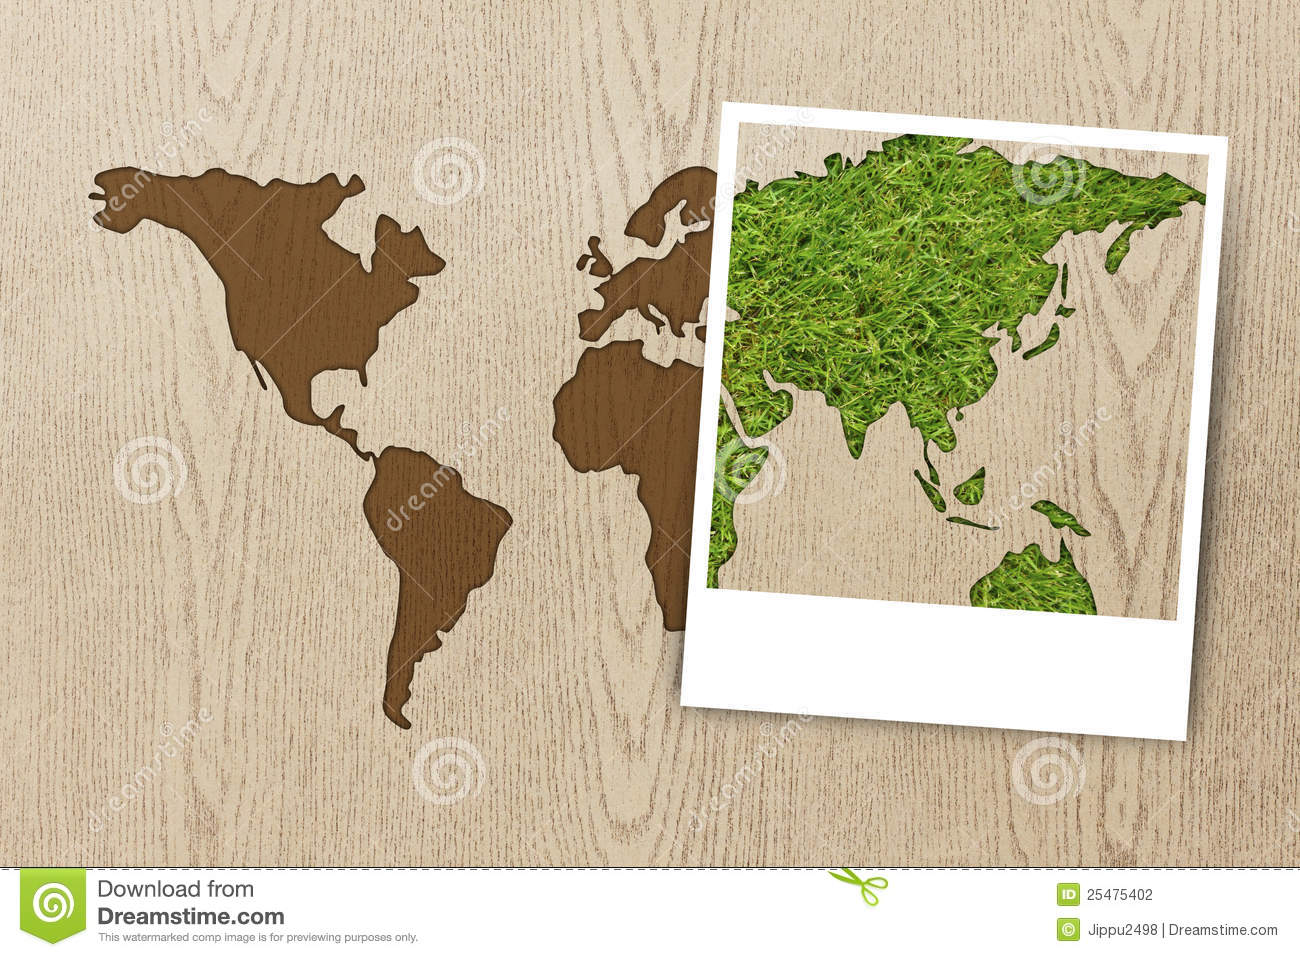 Frame photo eco world map on wood texture stock photo image of download frame photo eco world map on wood texture stock photo image of photo gumiabroncs Images